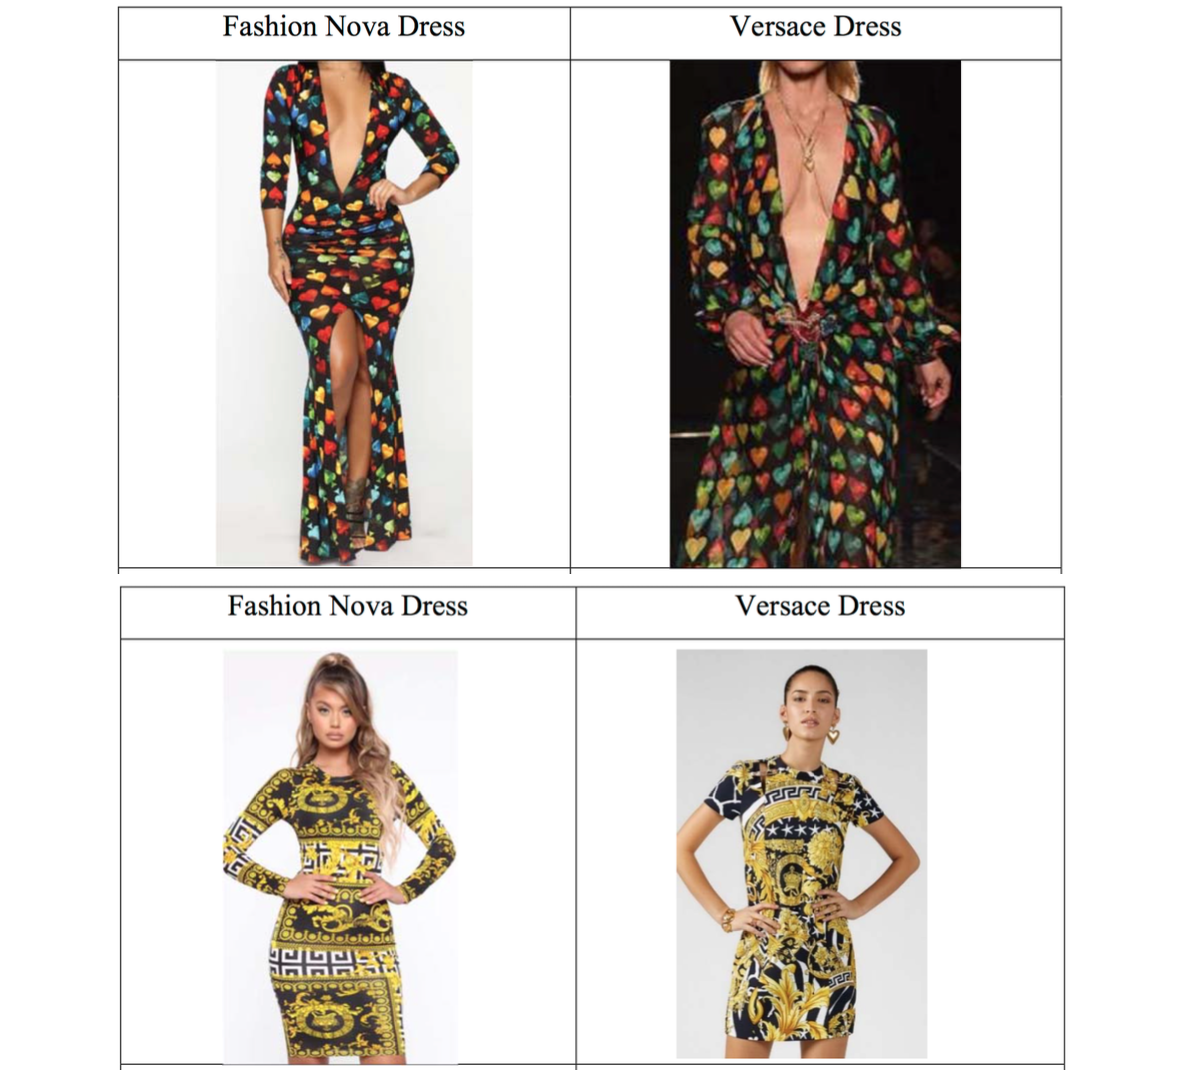 Versace Is Suing Fashion Nova For Brazenly Copying Its Designs Infringing Its Trademarks The Fashion Law